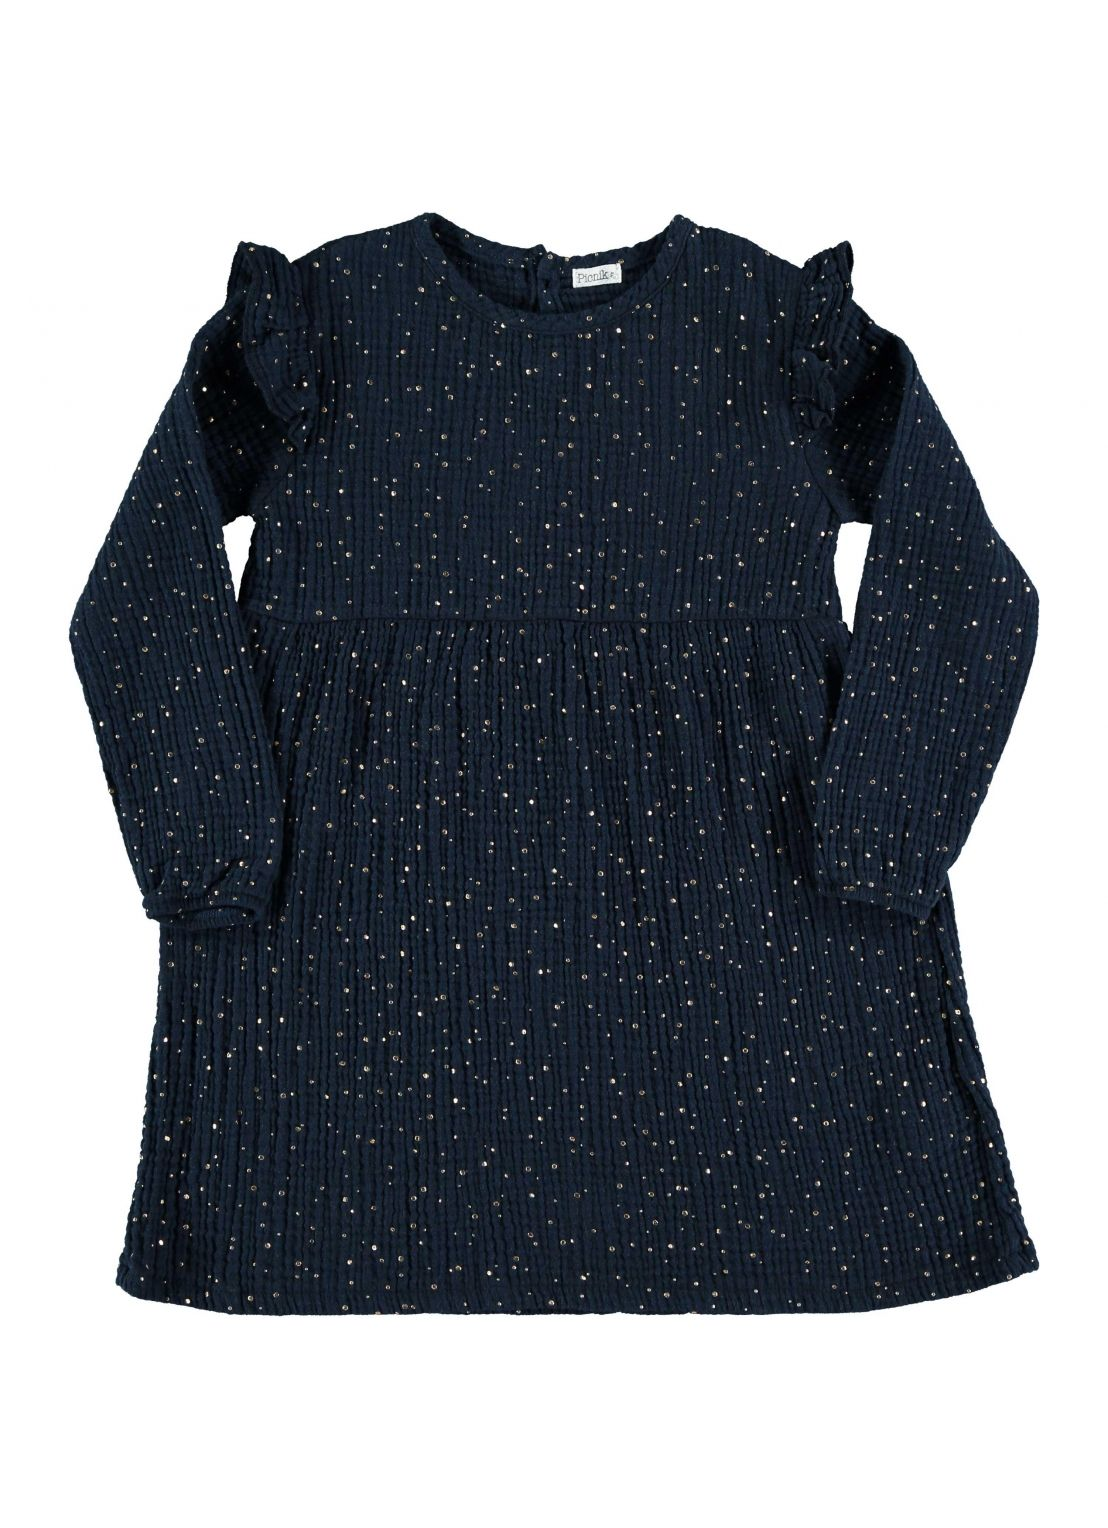 Kid DRESS Girl- 100 % Cotton - Woven